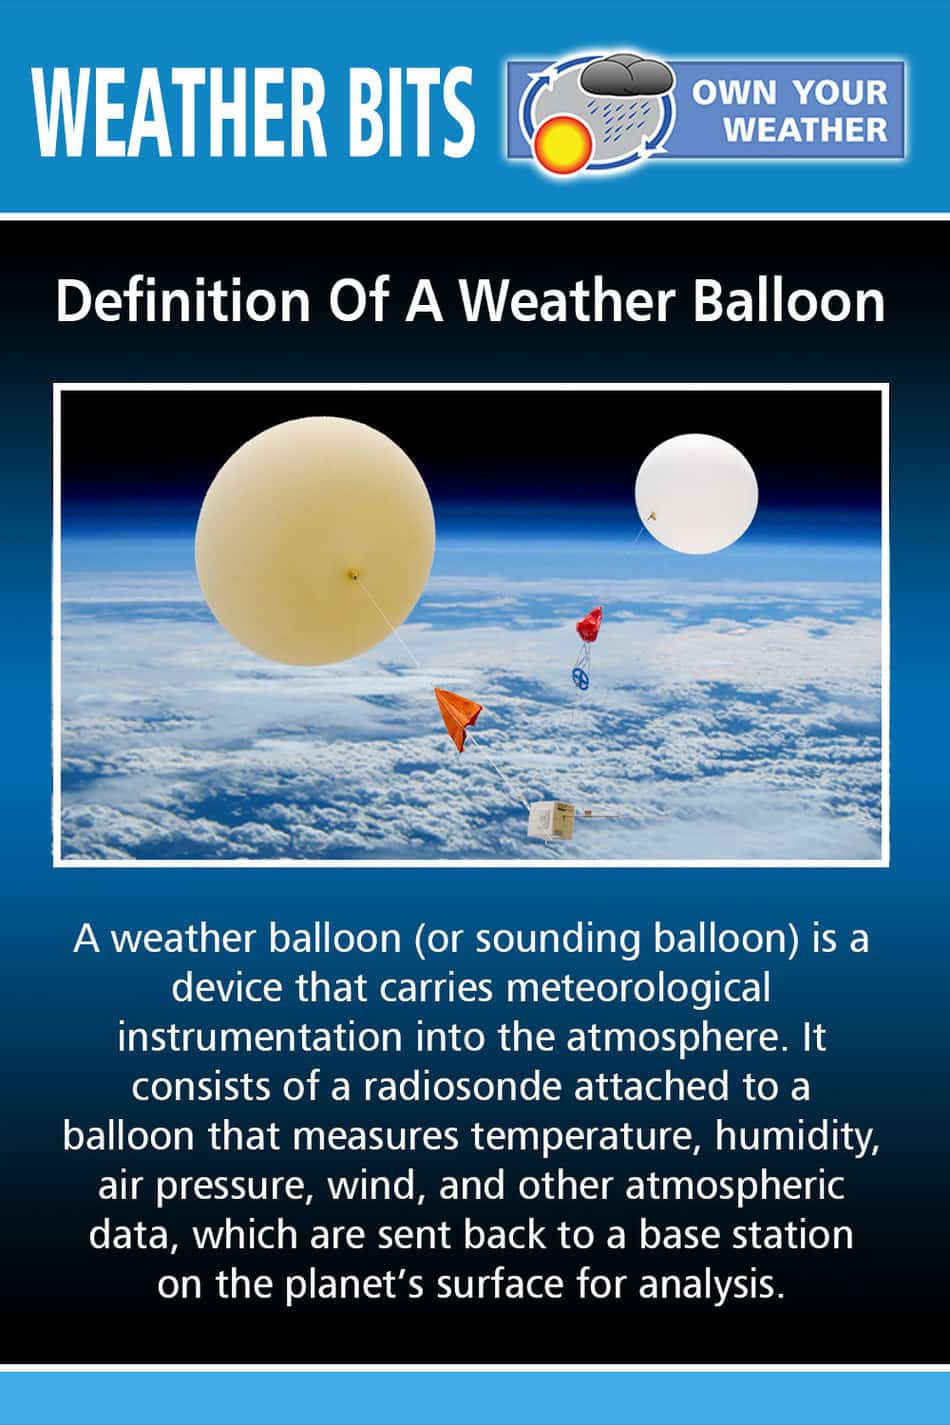 https://ownyourweather.com/what-is-a-weather-balloon/